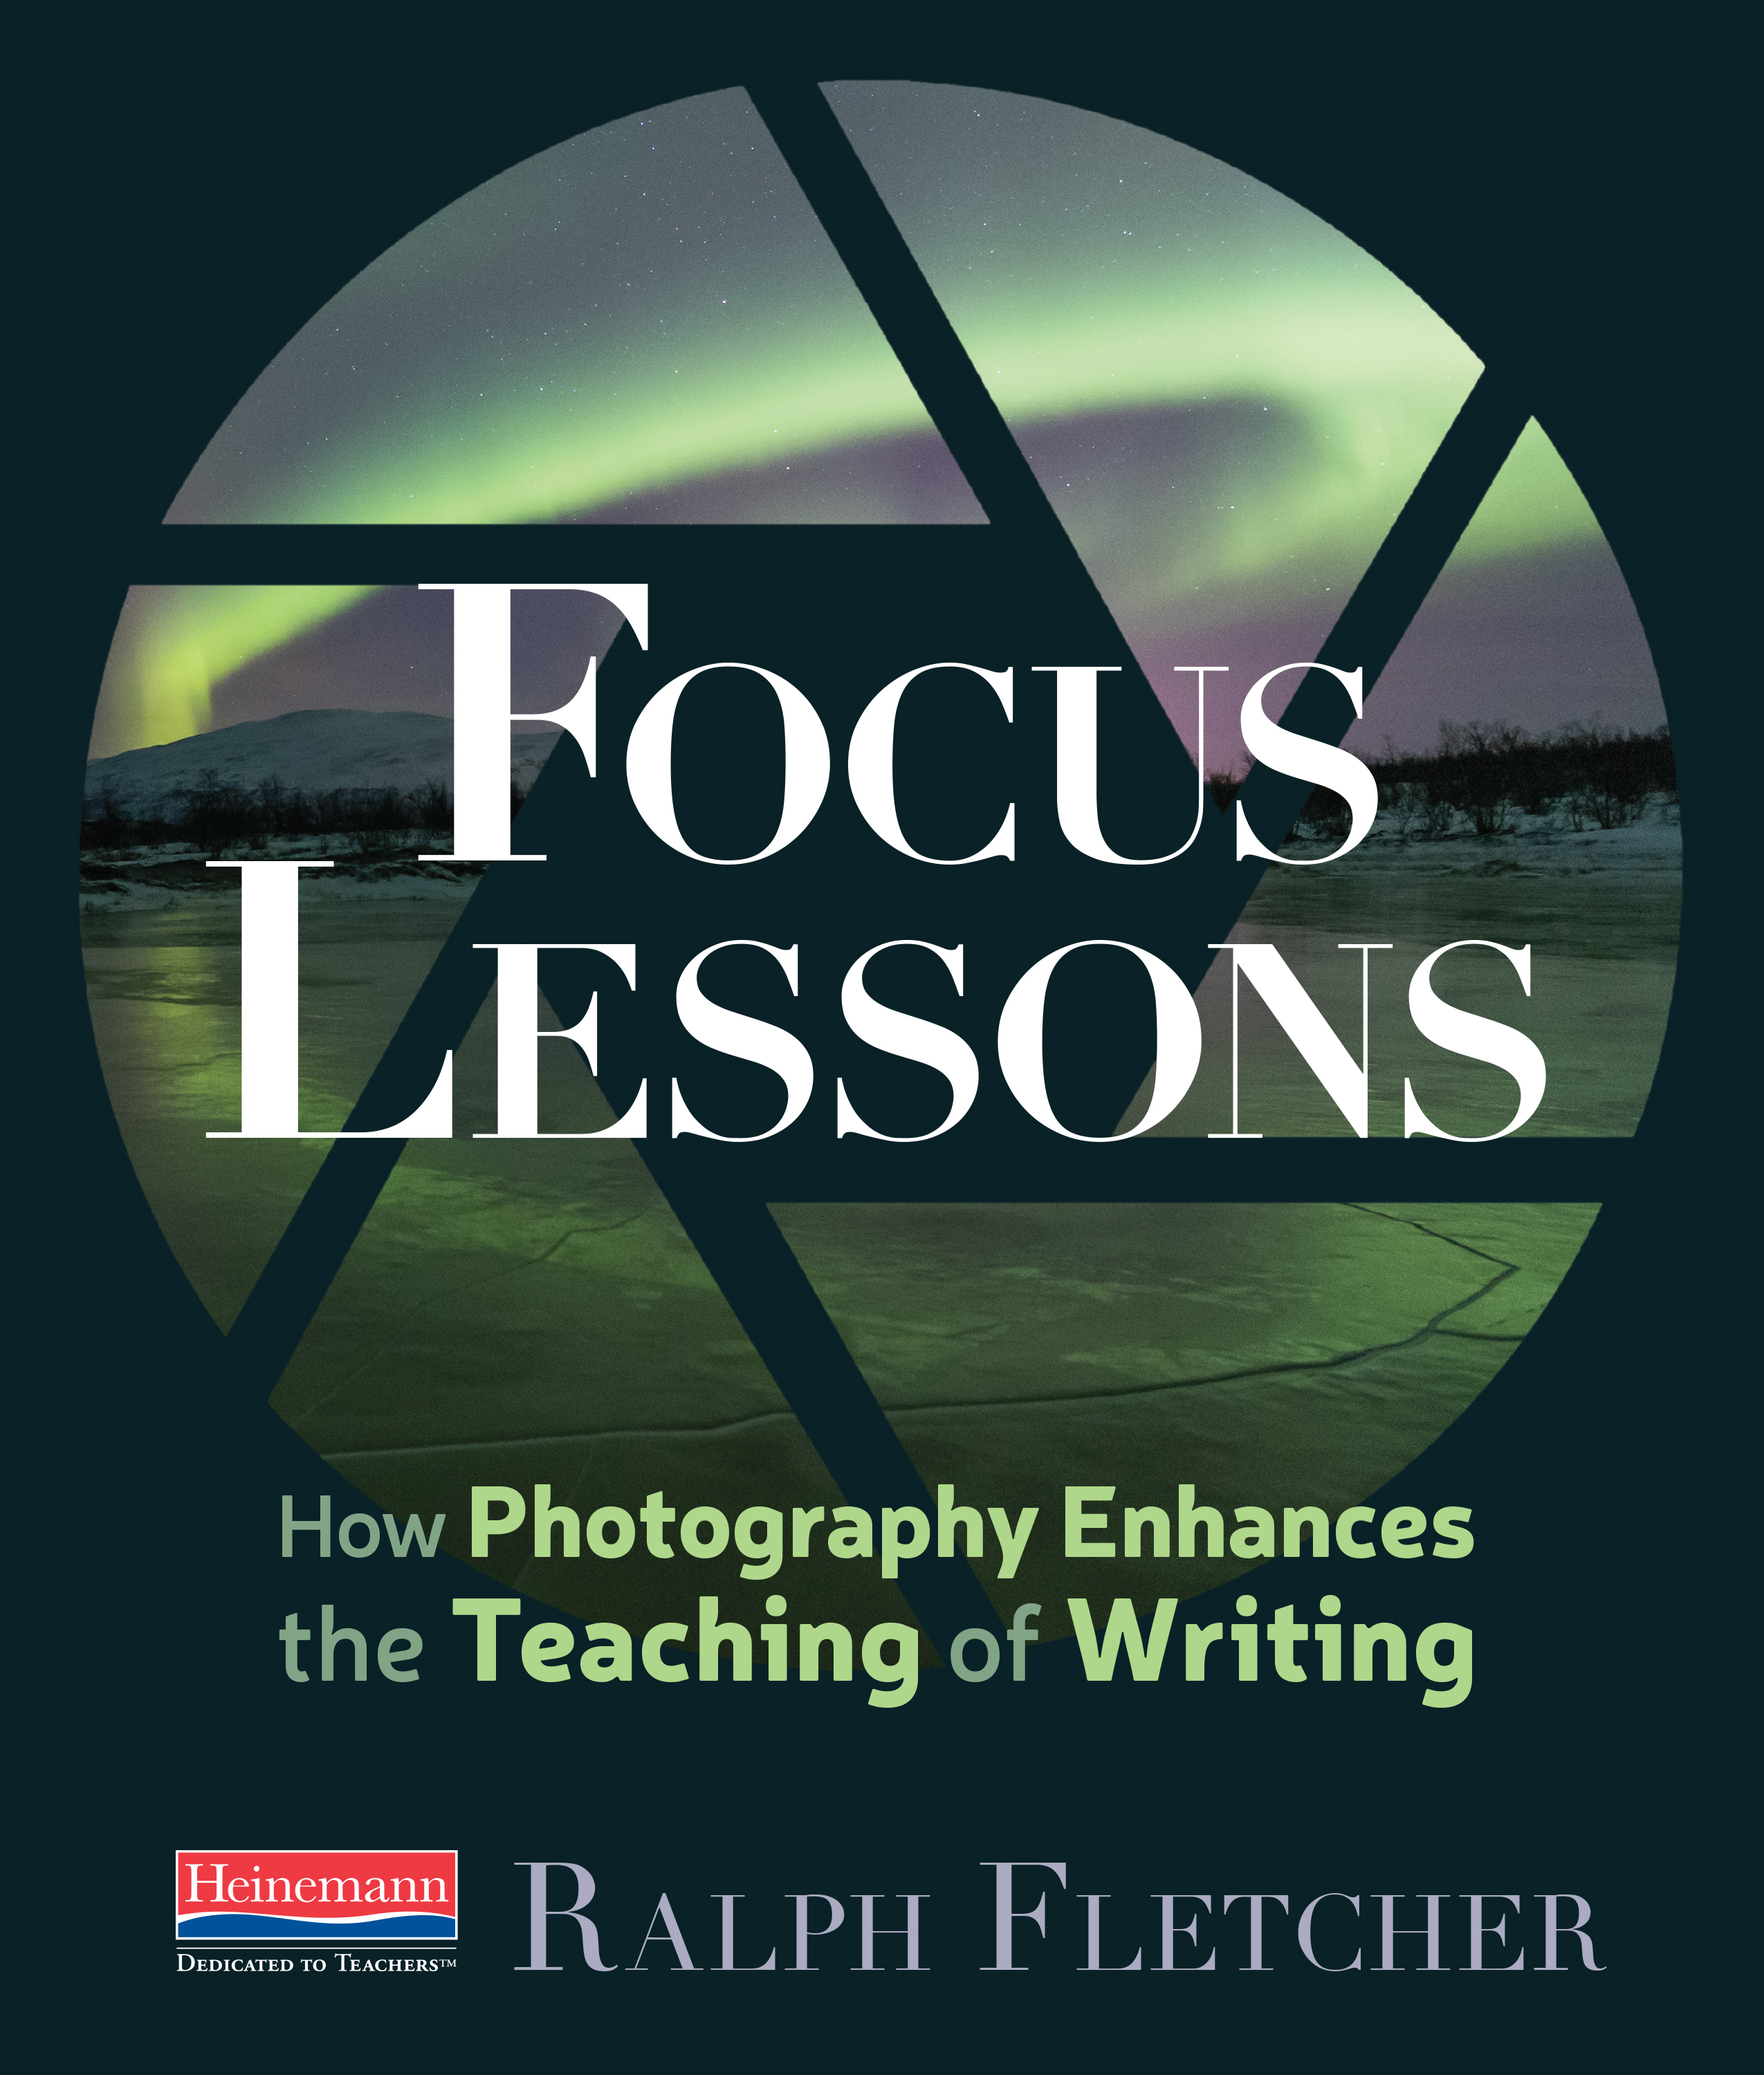 Focus Lessons: A Review and Giveaway!